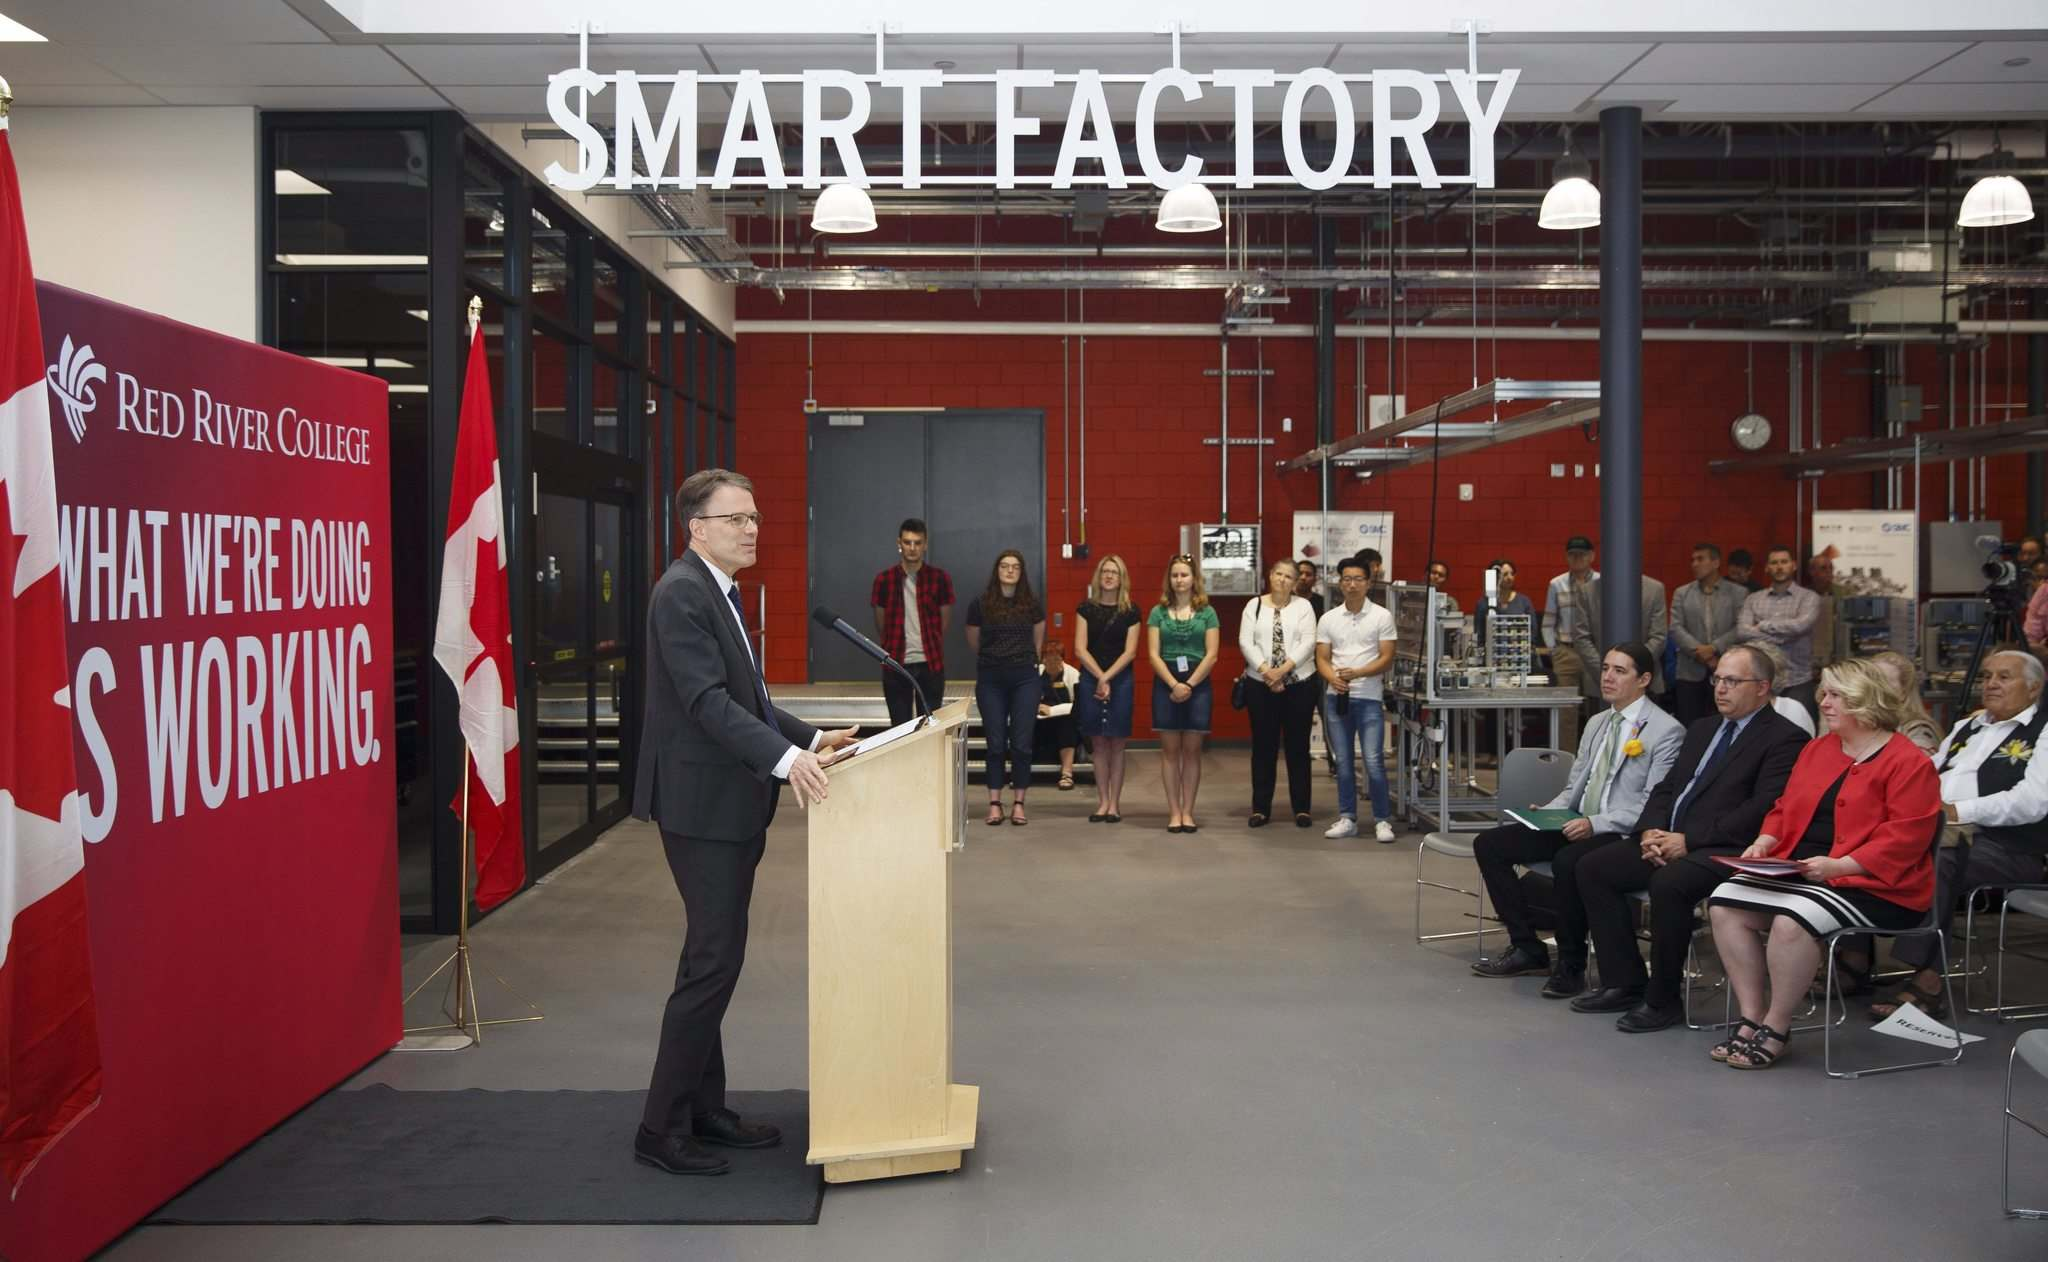 <p>Red River College president and CEO Paul Vogt speaks at the official opening of the institution's brand-new Smart Factory research and learning space on Friday morning.</p>